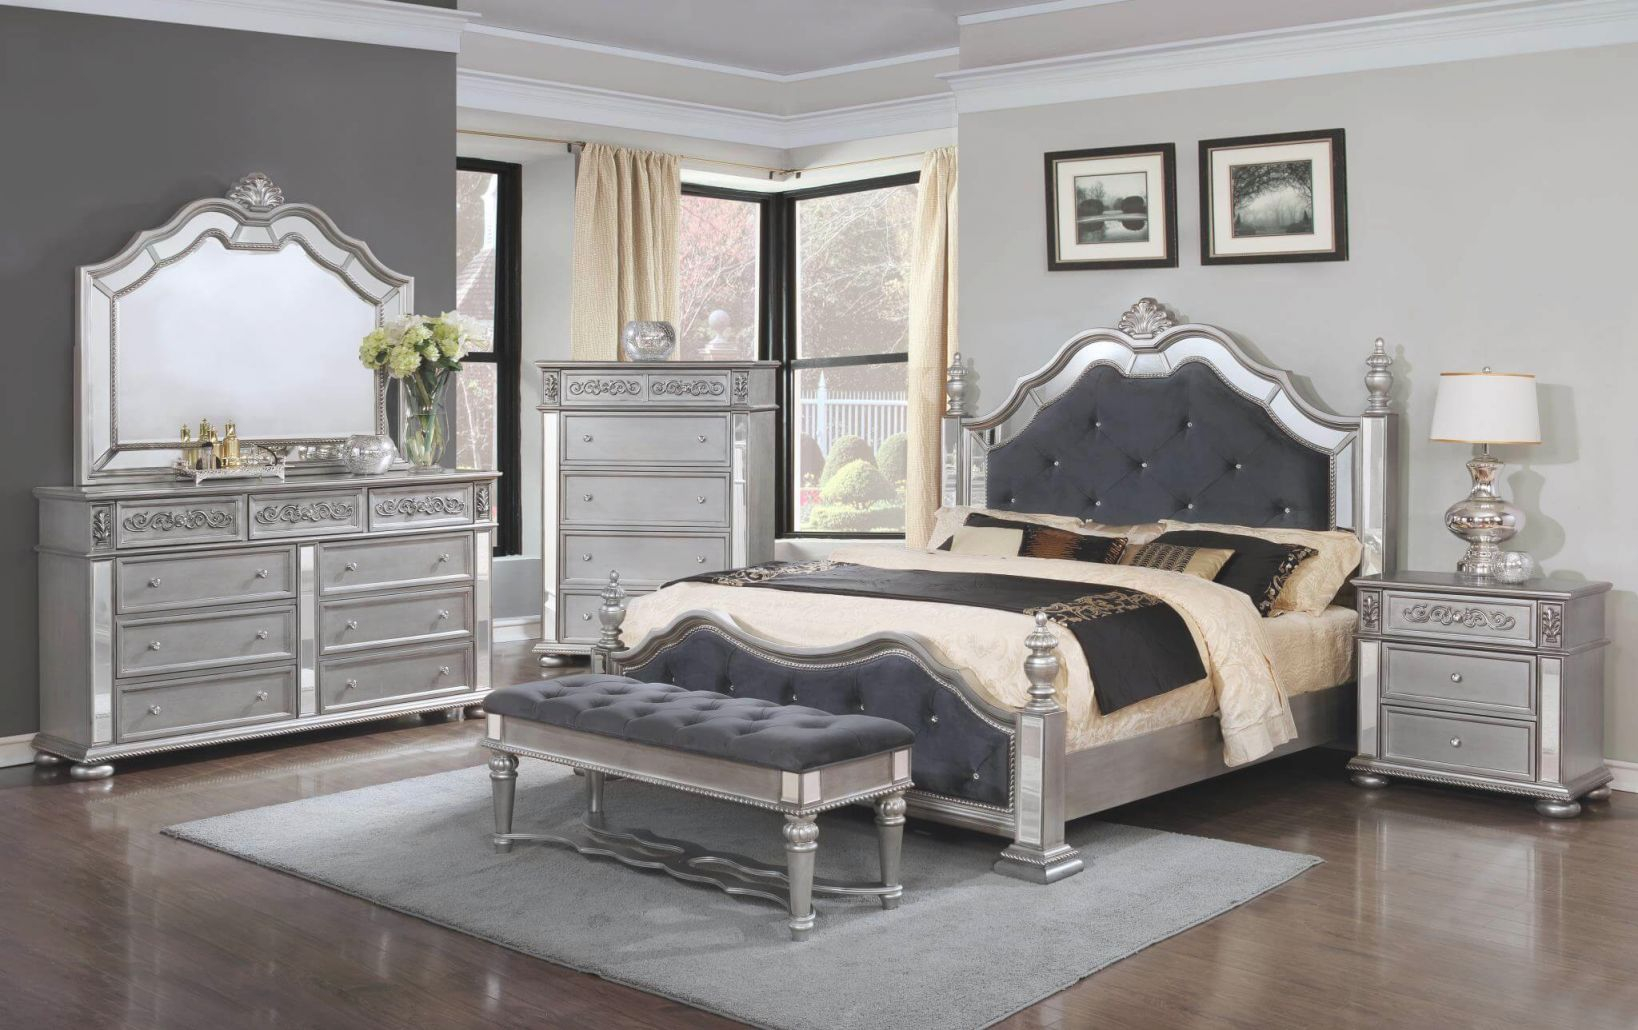 B878 Elegant Silver Bedroom Set regarding Inspirational Complete Bedroom Furniture Sets